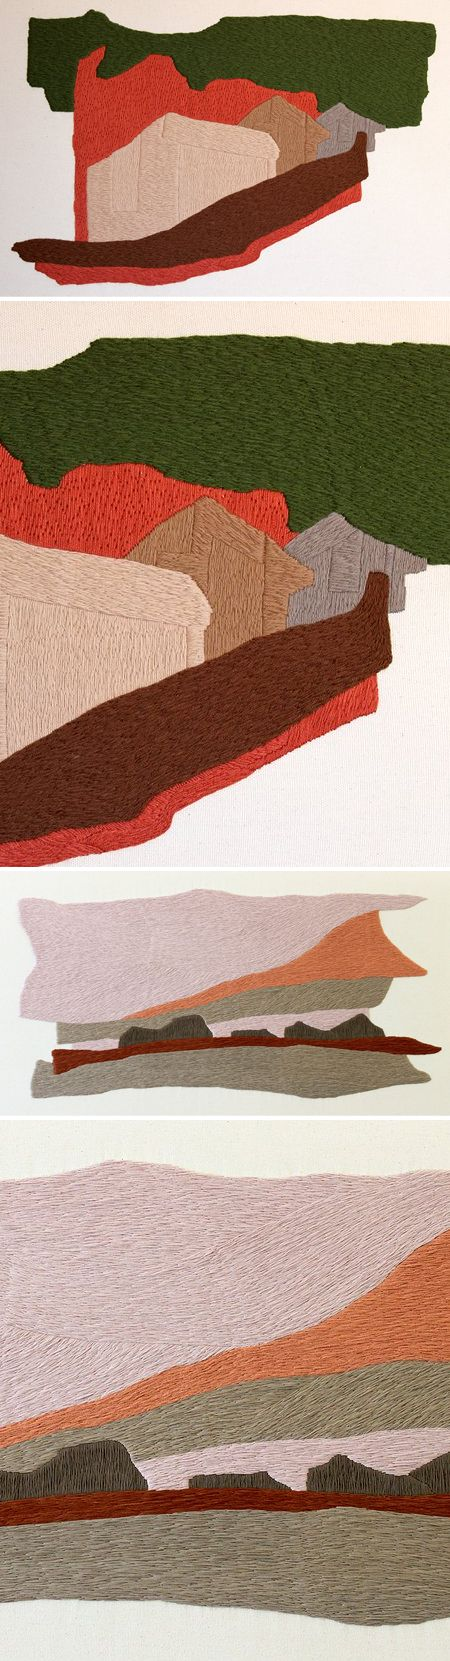 defne tesal - embroidered landscapes on fabric  I was actually thinking of this today but in Shetland colours!